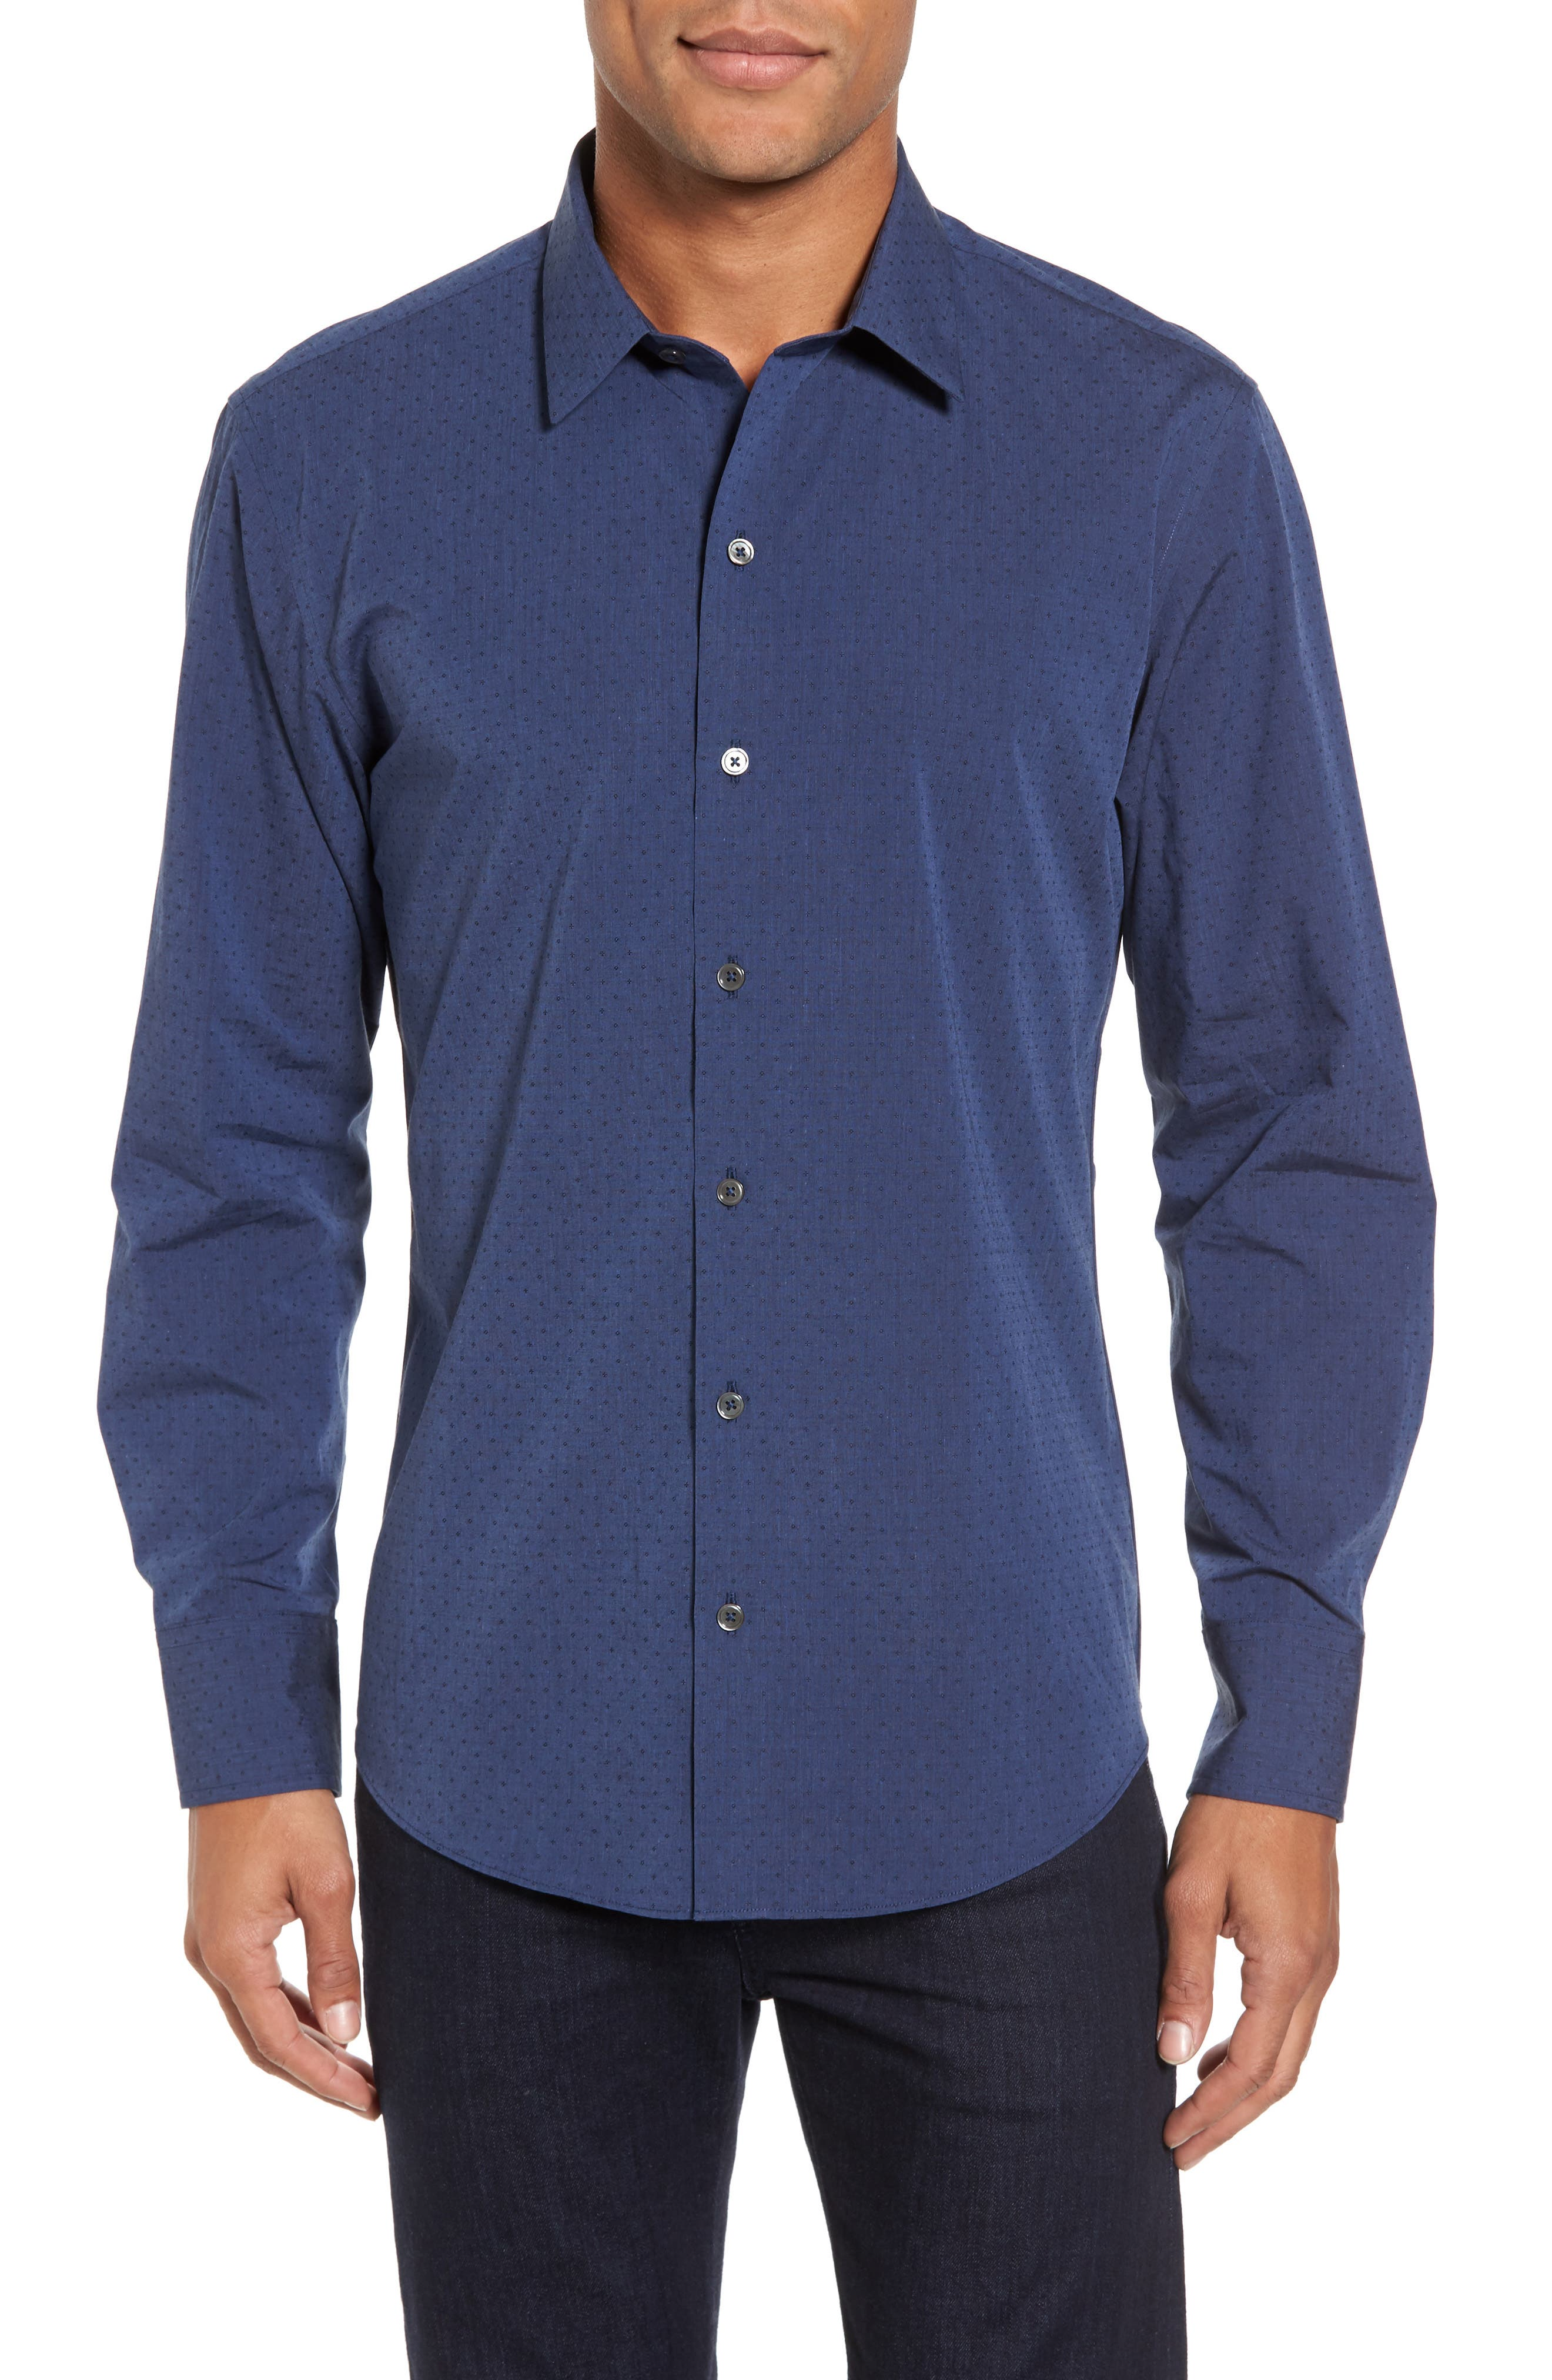 Main Image - Zachary Prell Colly Slim Fit Print Sport Shirt